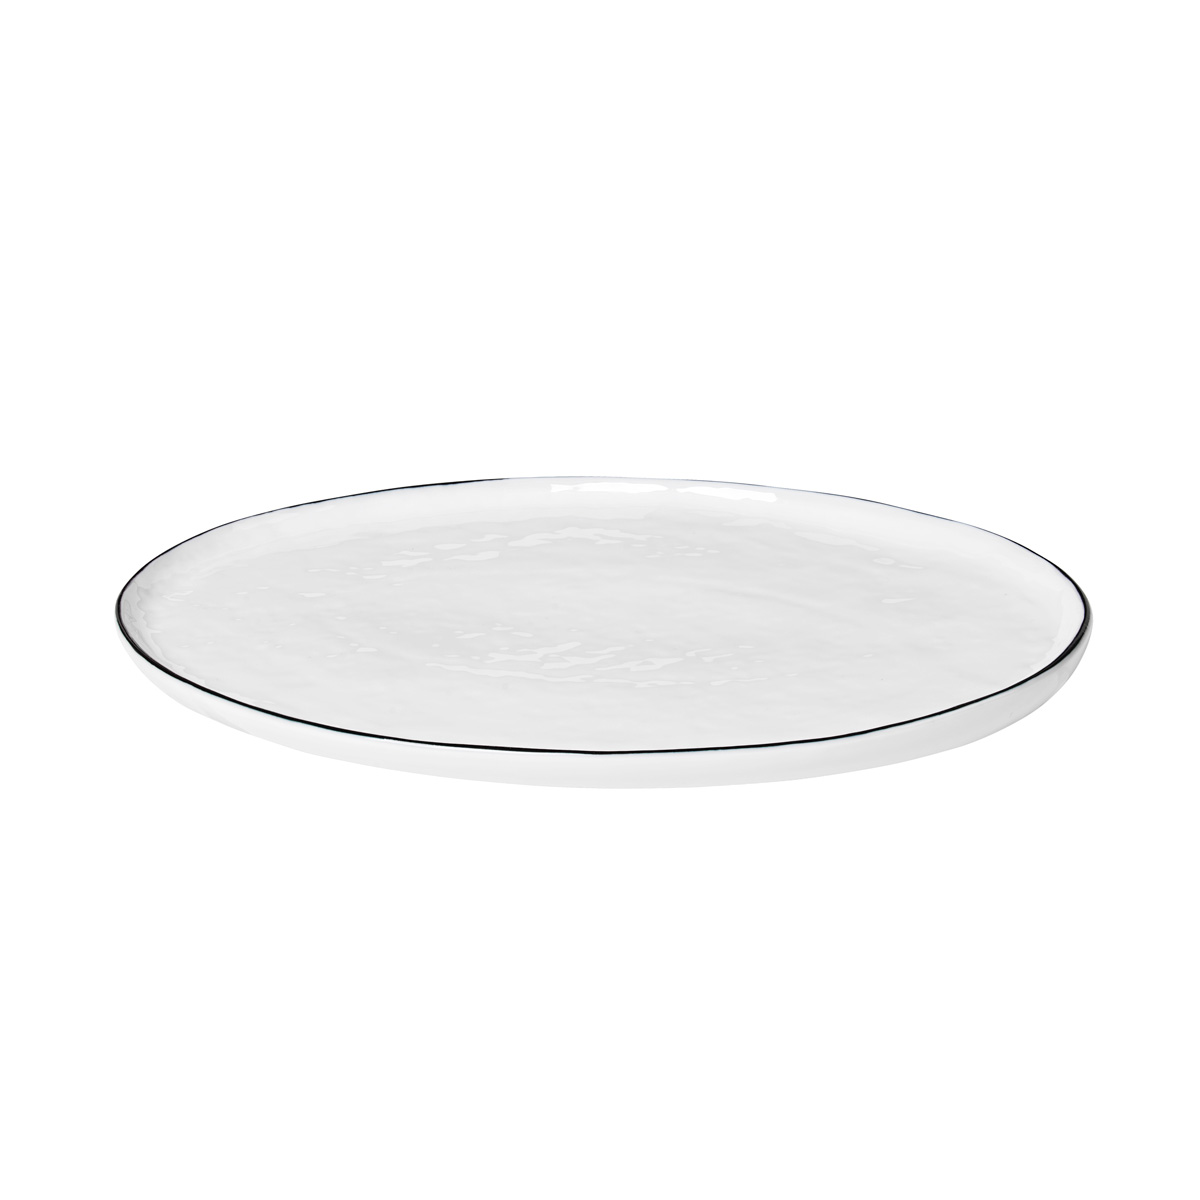 Broste-Salt-Oval-Plate-Medium-14533193